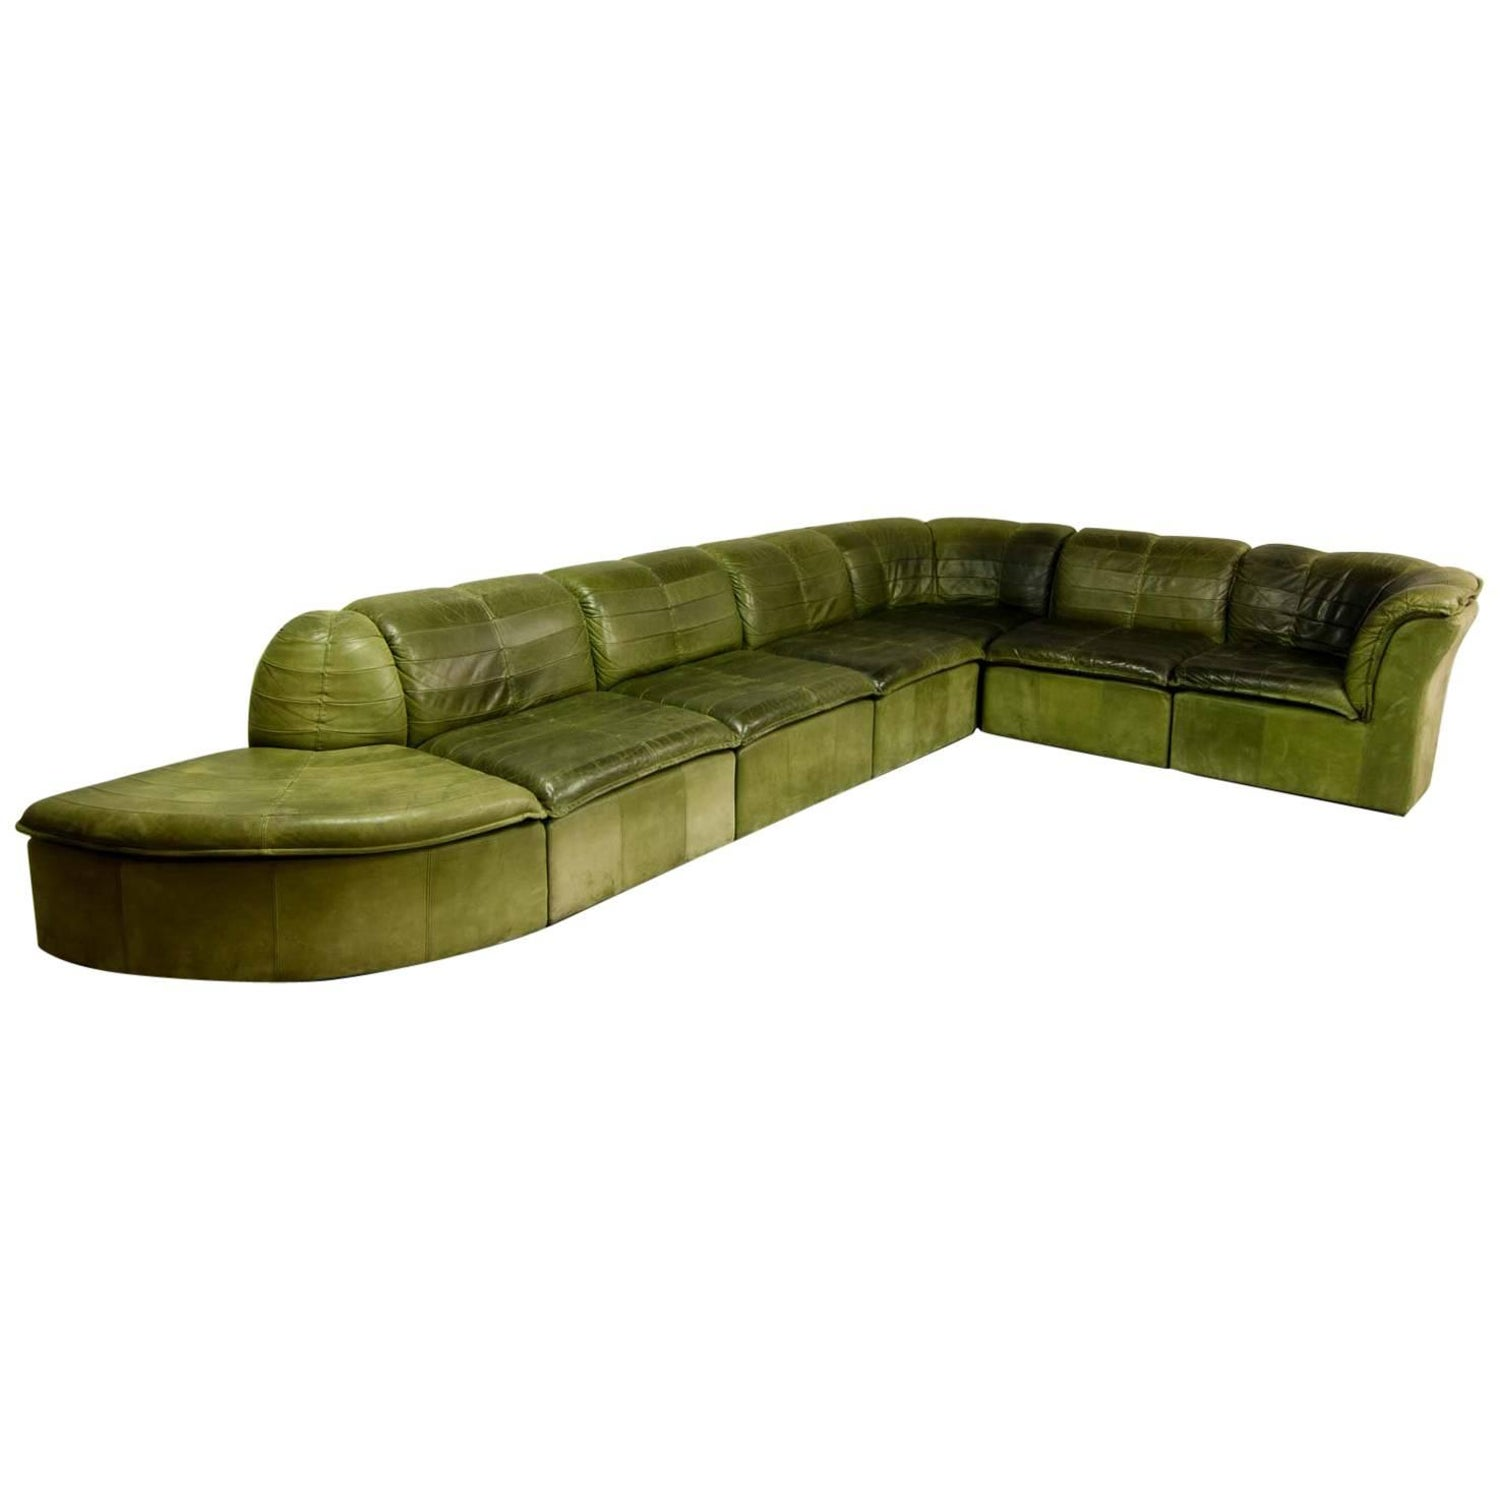 Mid Century Green Sofa Daybed by Ekornes at 1stdibs